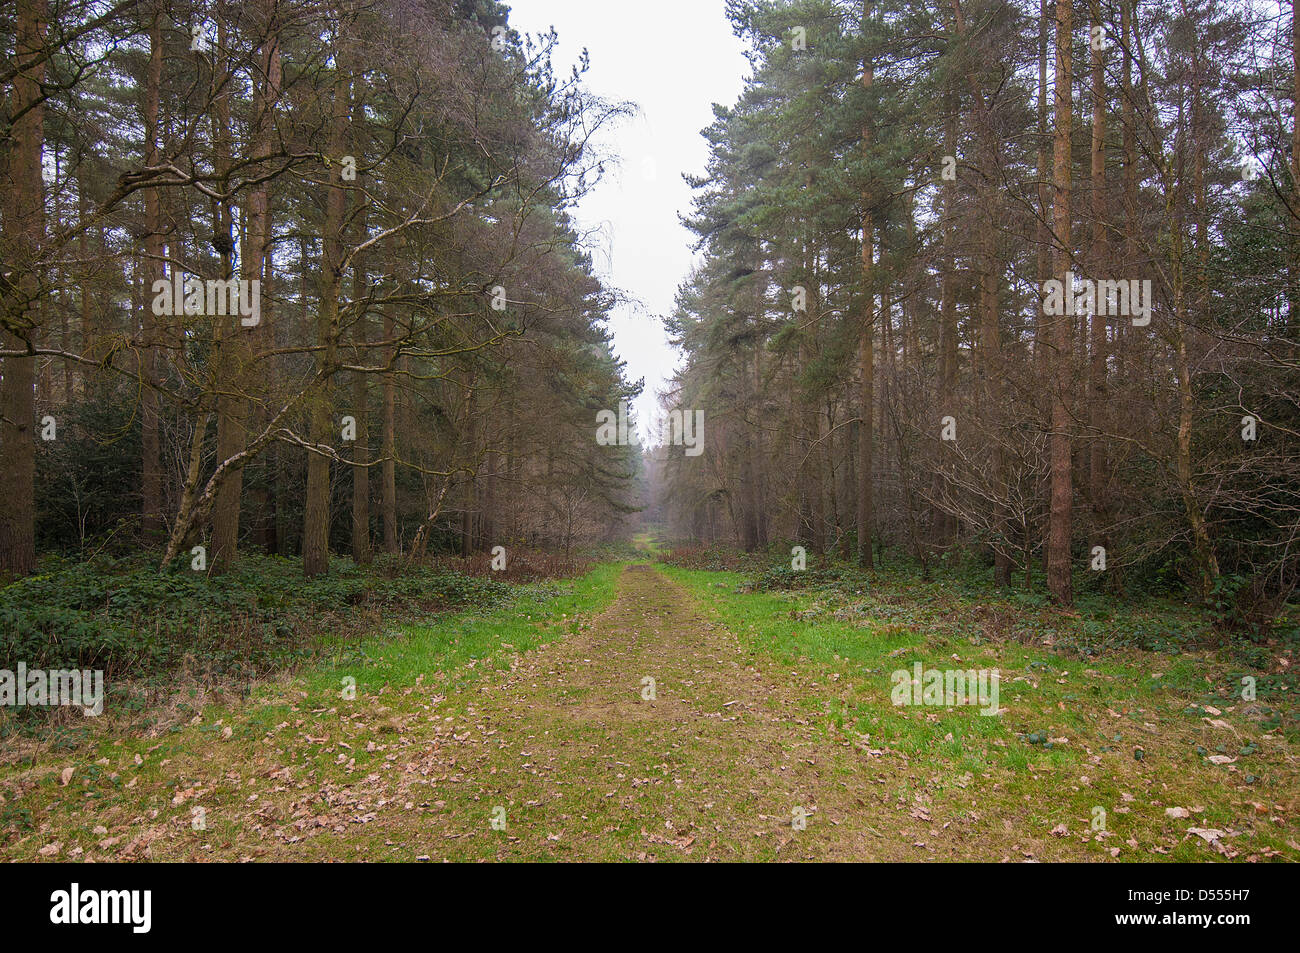 Dirt road in forest - Stock Image